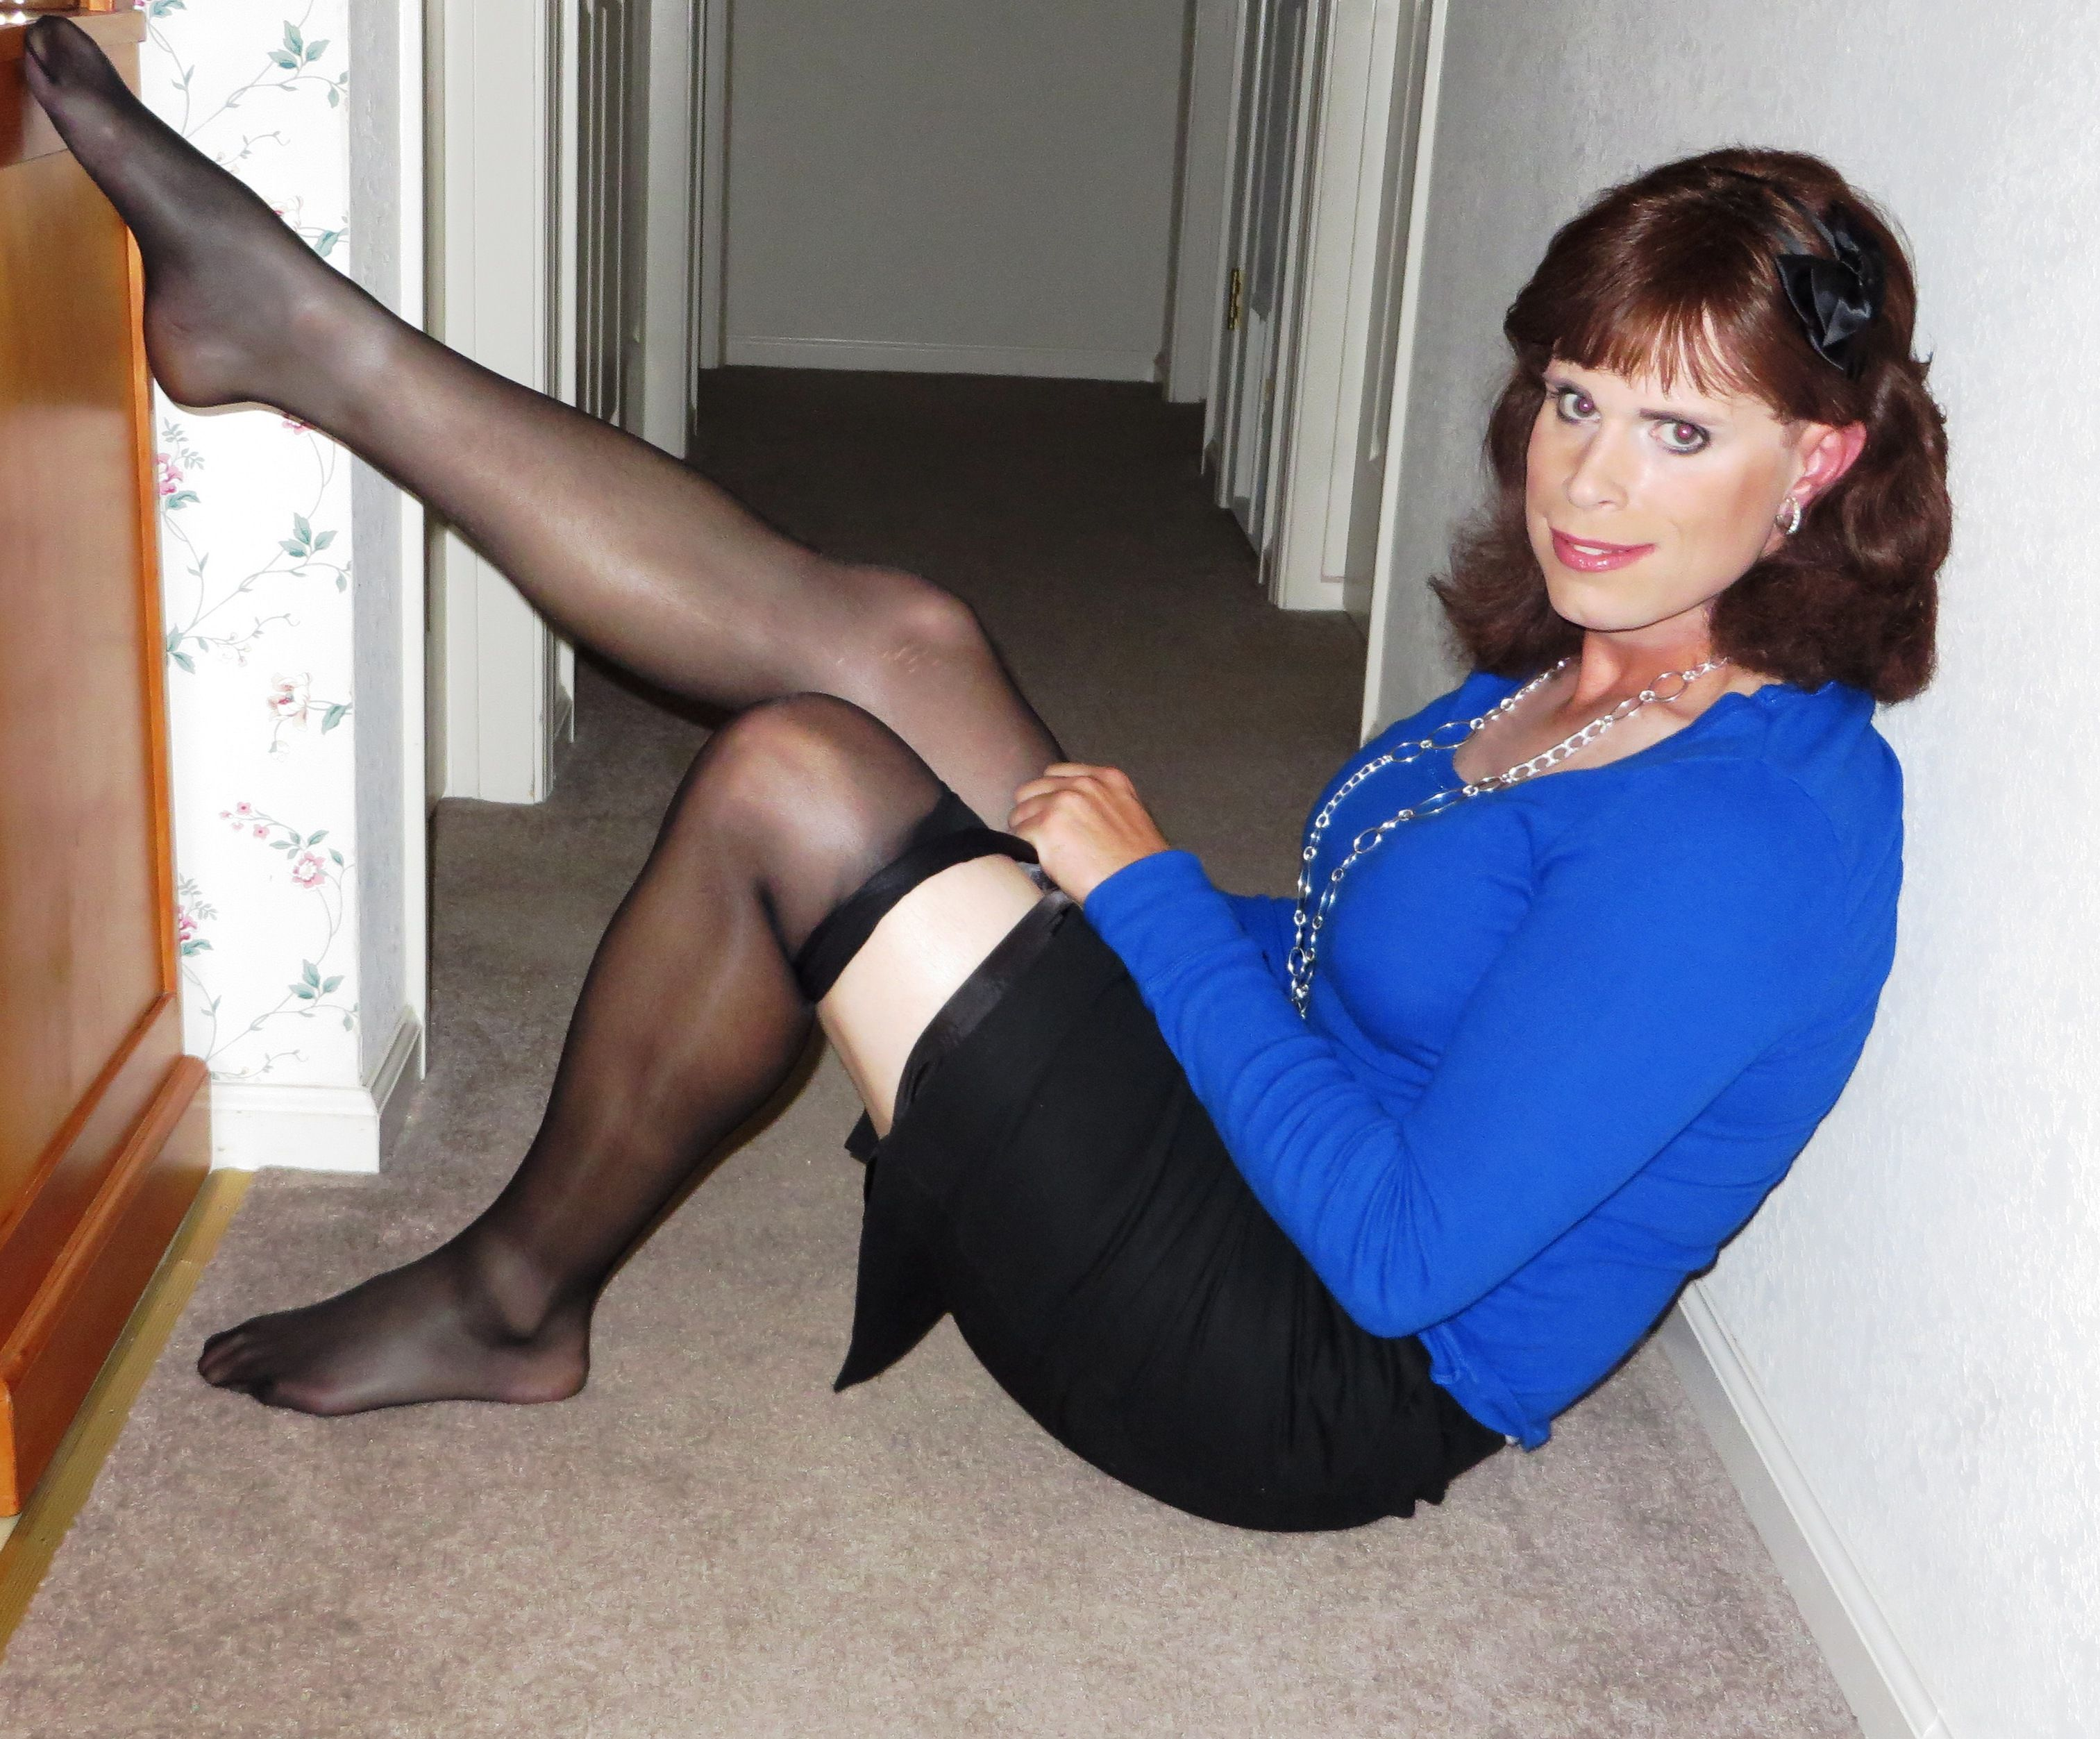 Shemale putting on pantyhose